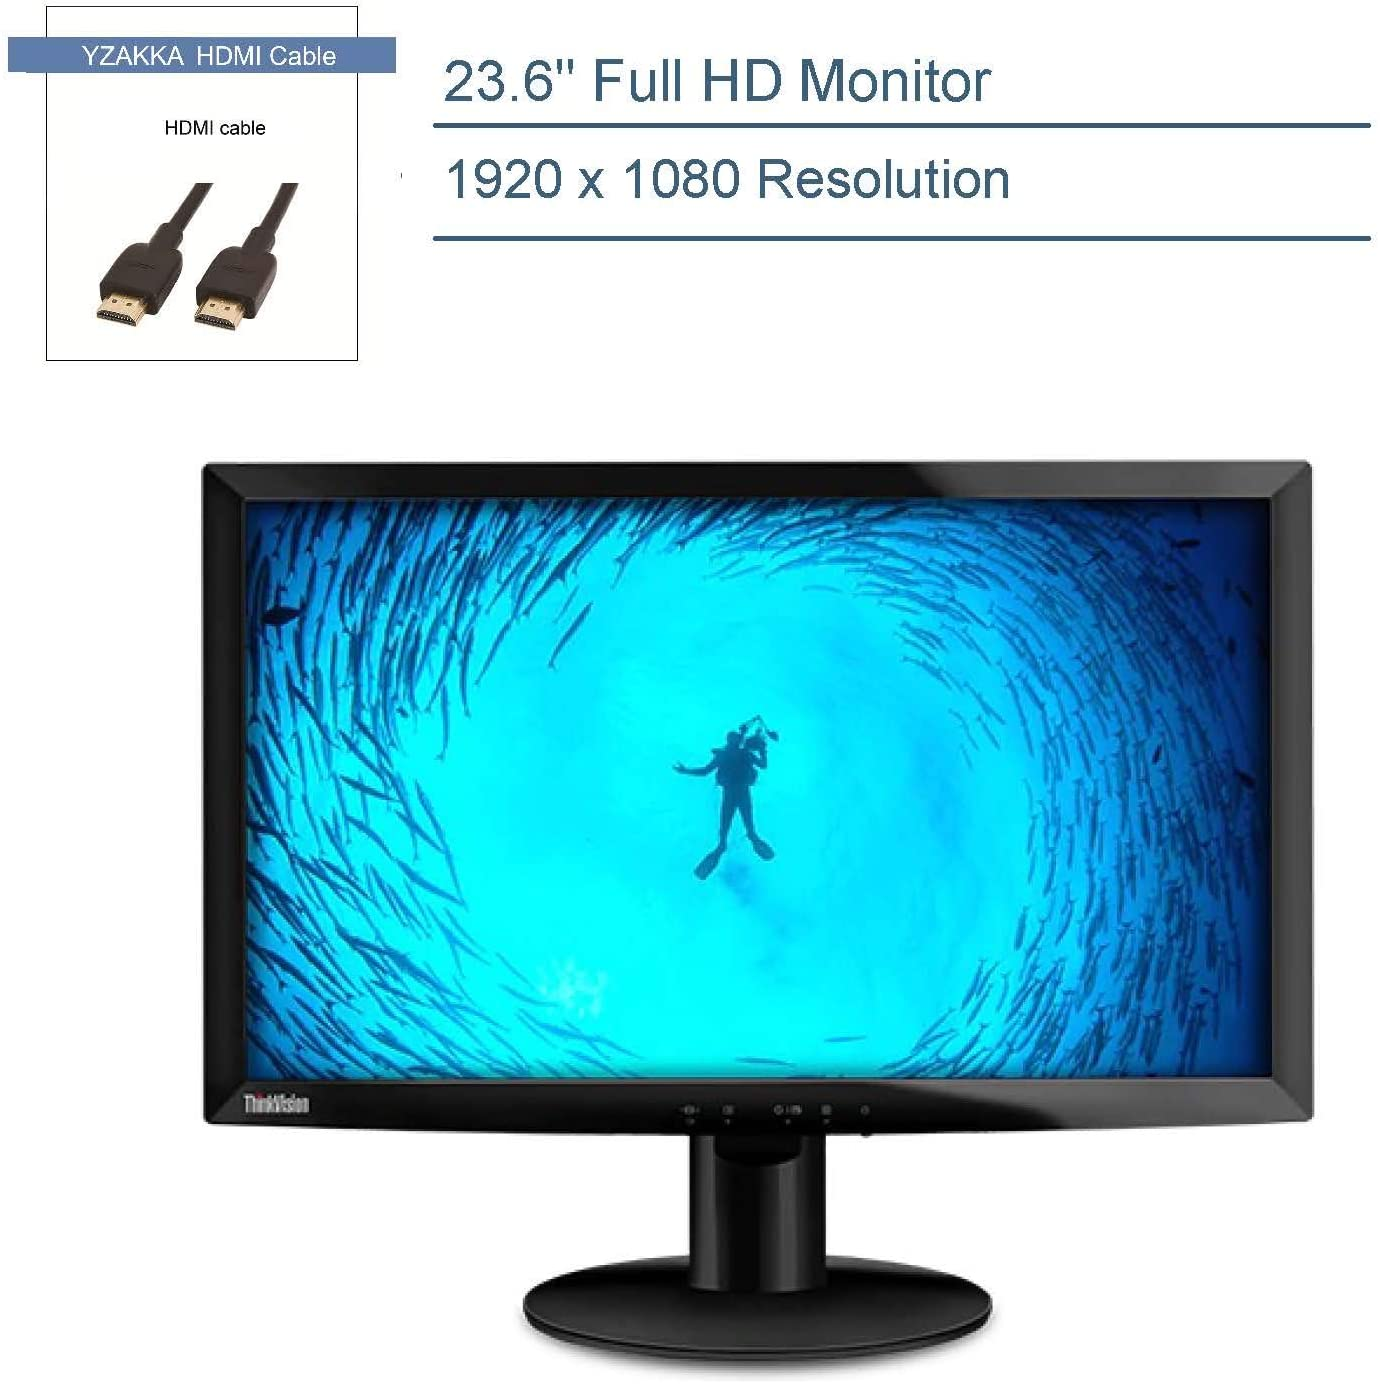 "2020 Lenovo 23.6"" LED Backlit LCD Monitor, FHD 1920x 1080 Screen, up to 1ms Response Time, 1000:1 Contrast Ratio, Tilt Adjust, HDMI, VGA, Audio Out, Tüv Low Blue Light Certified, YZAKKA HDMI Cable 7ft"